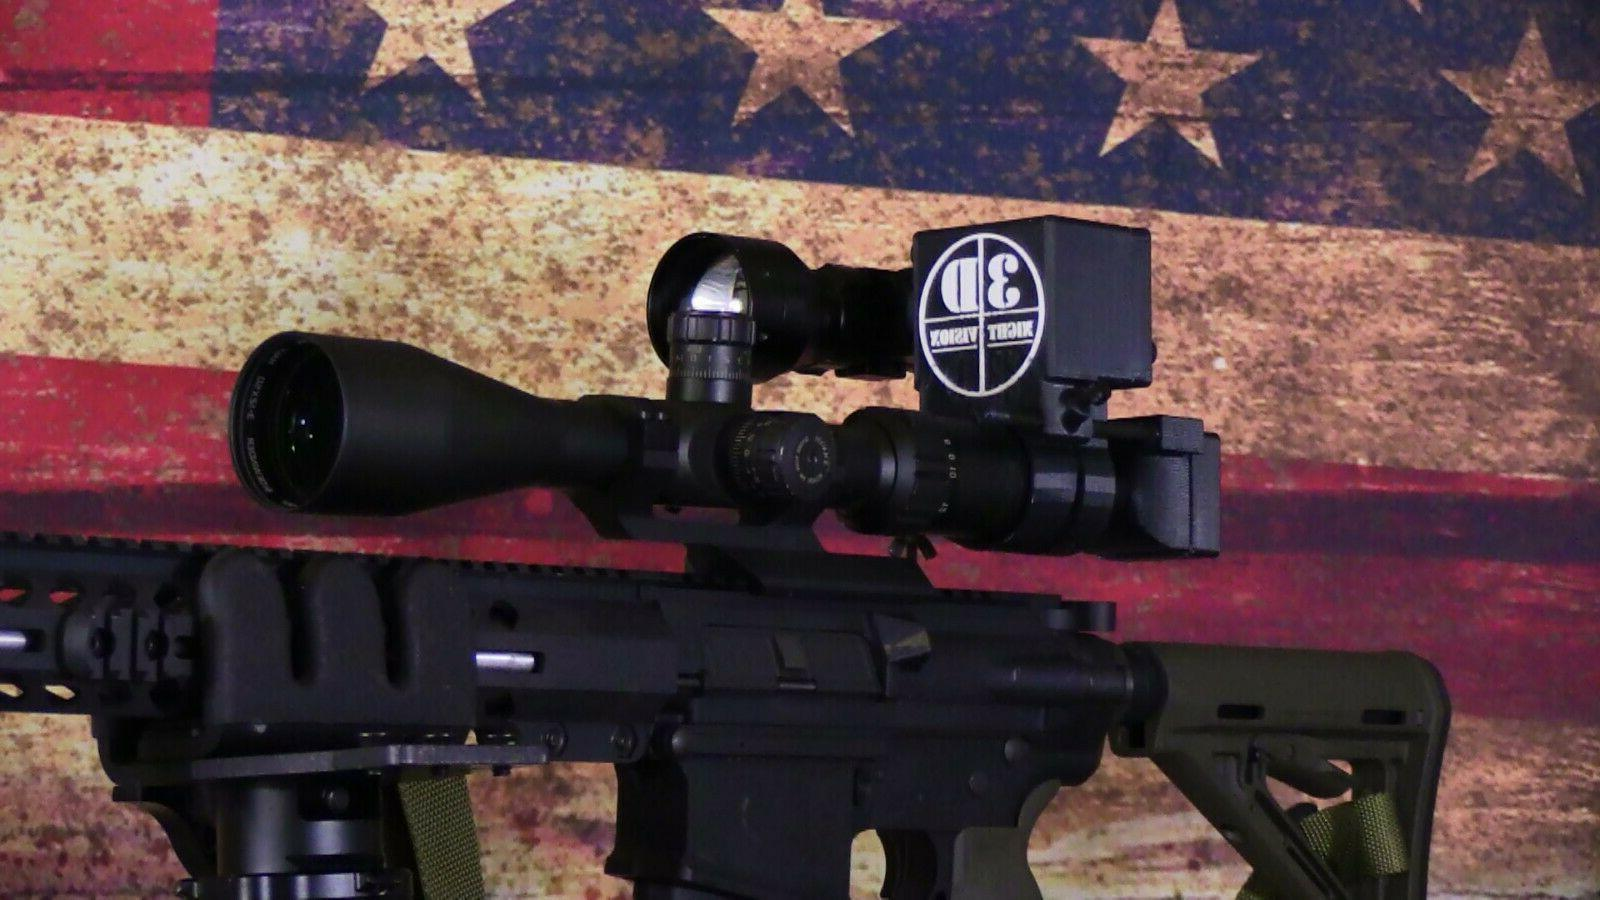 scope attachment for rifle hunting made in